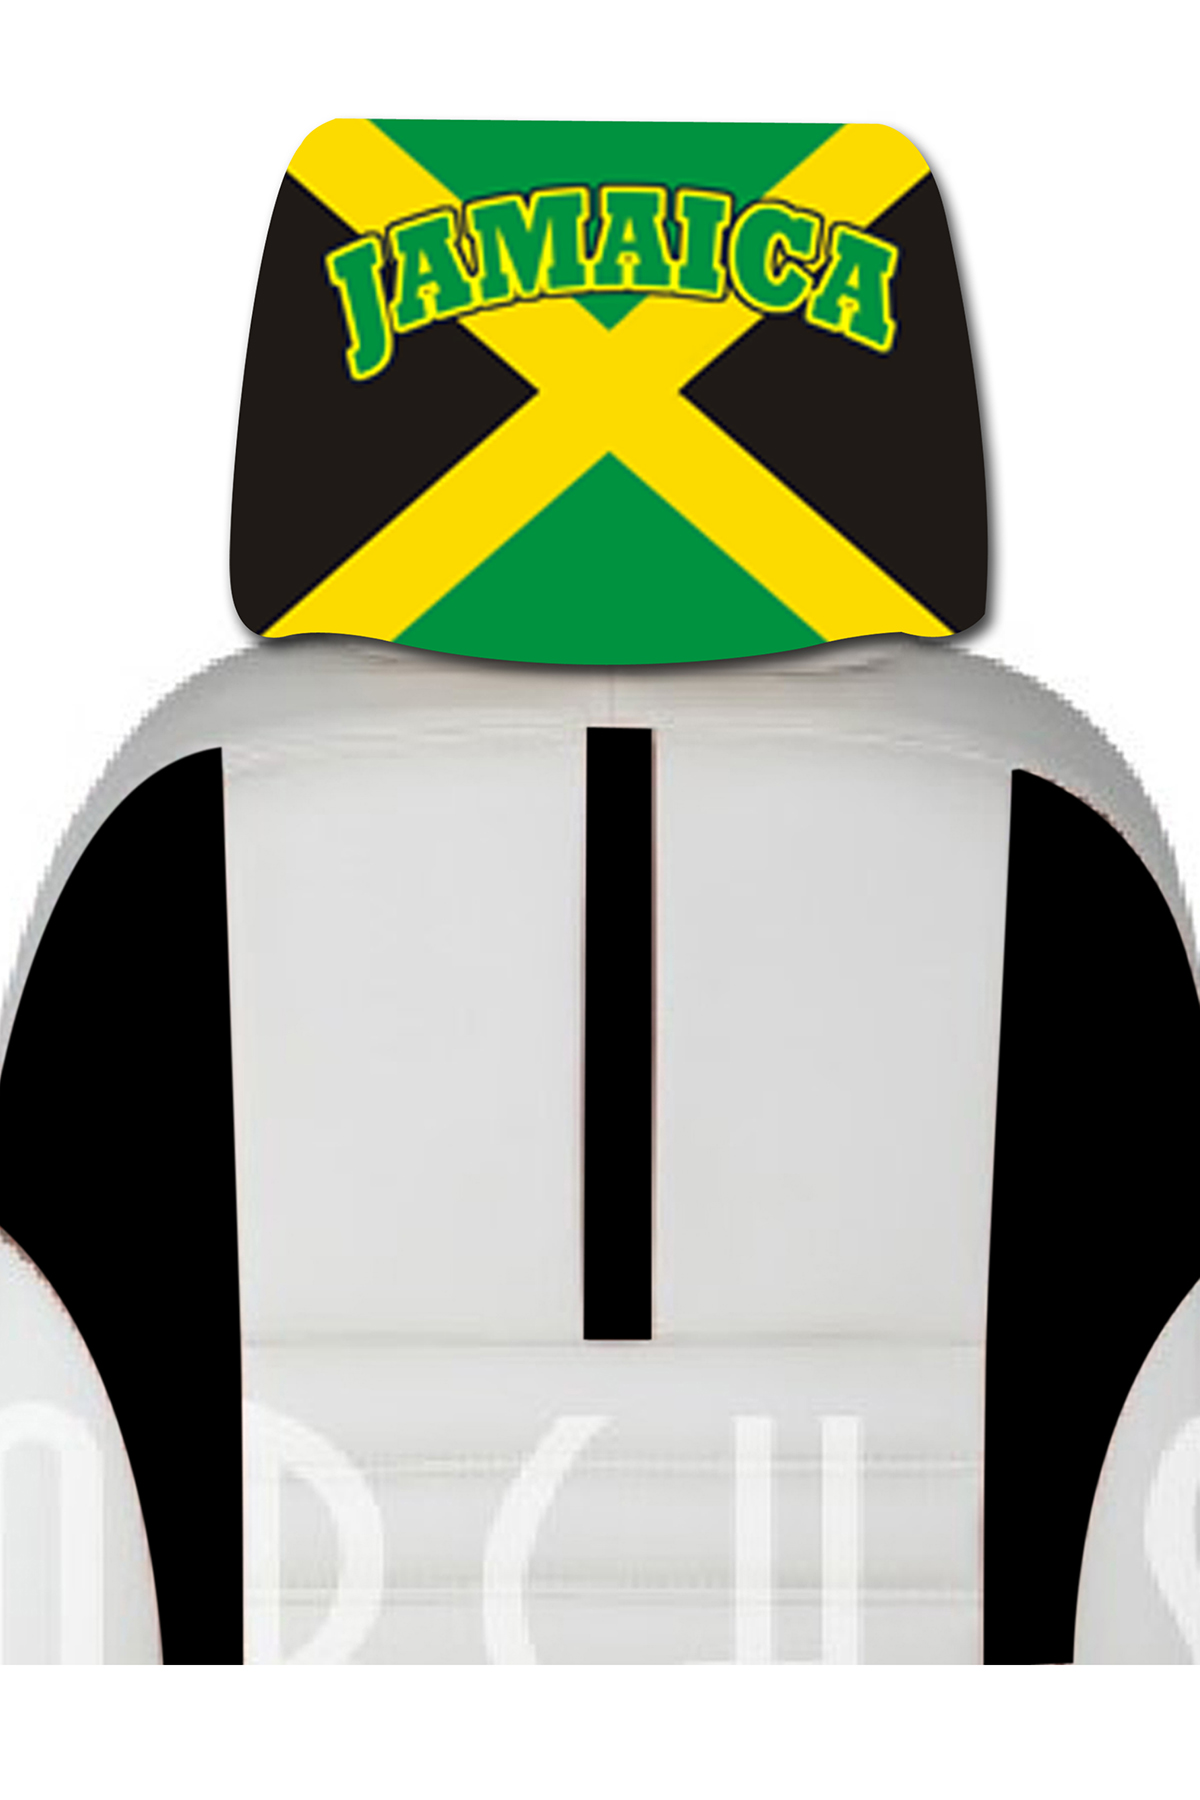 images/Jamaica image car cover seat flag.jpg